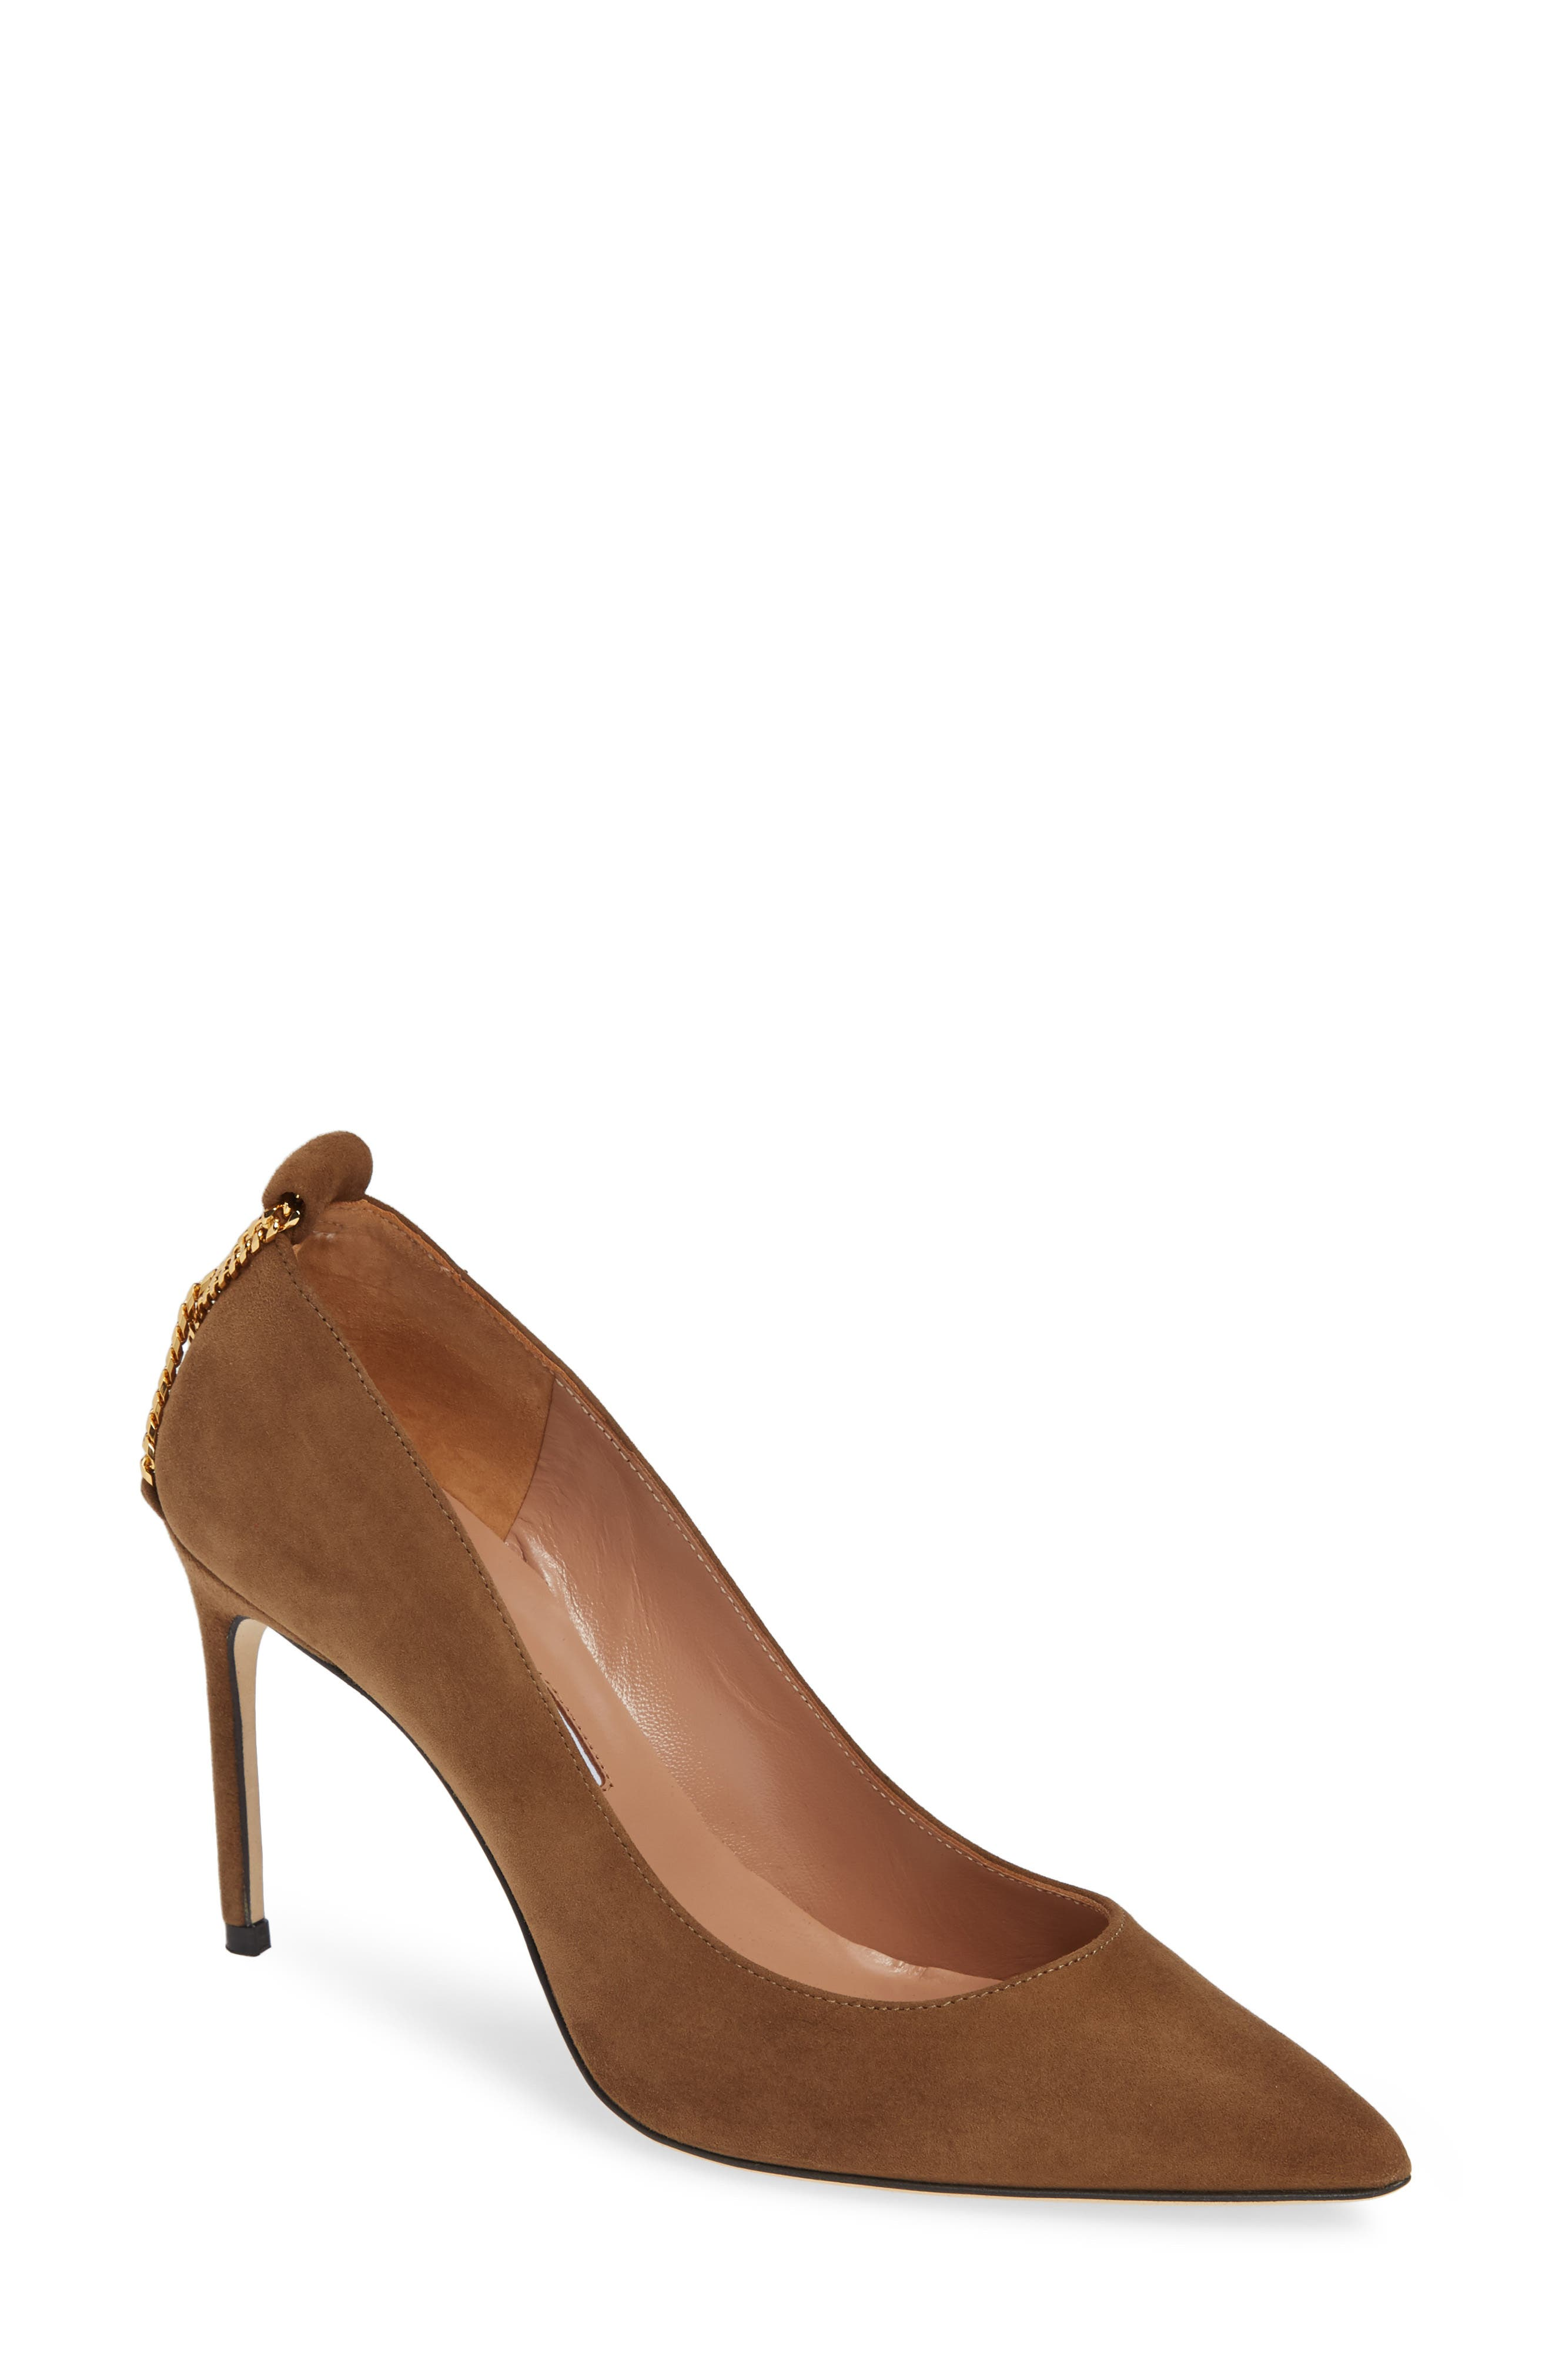 BRIAN ATWOOD Voyage Pump in Khaki Suede